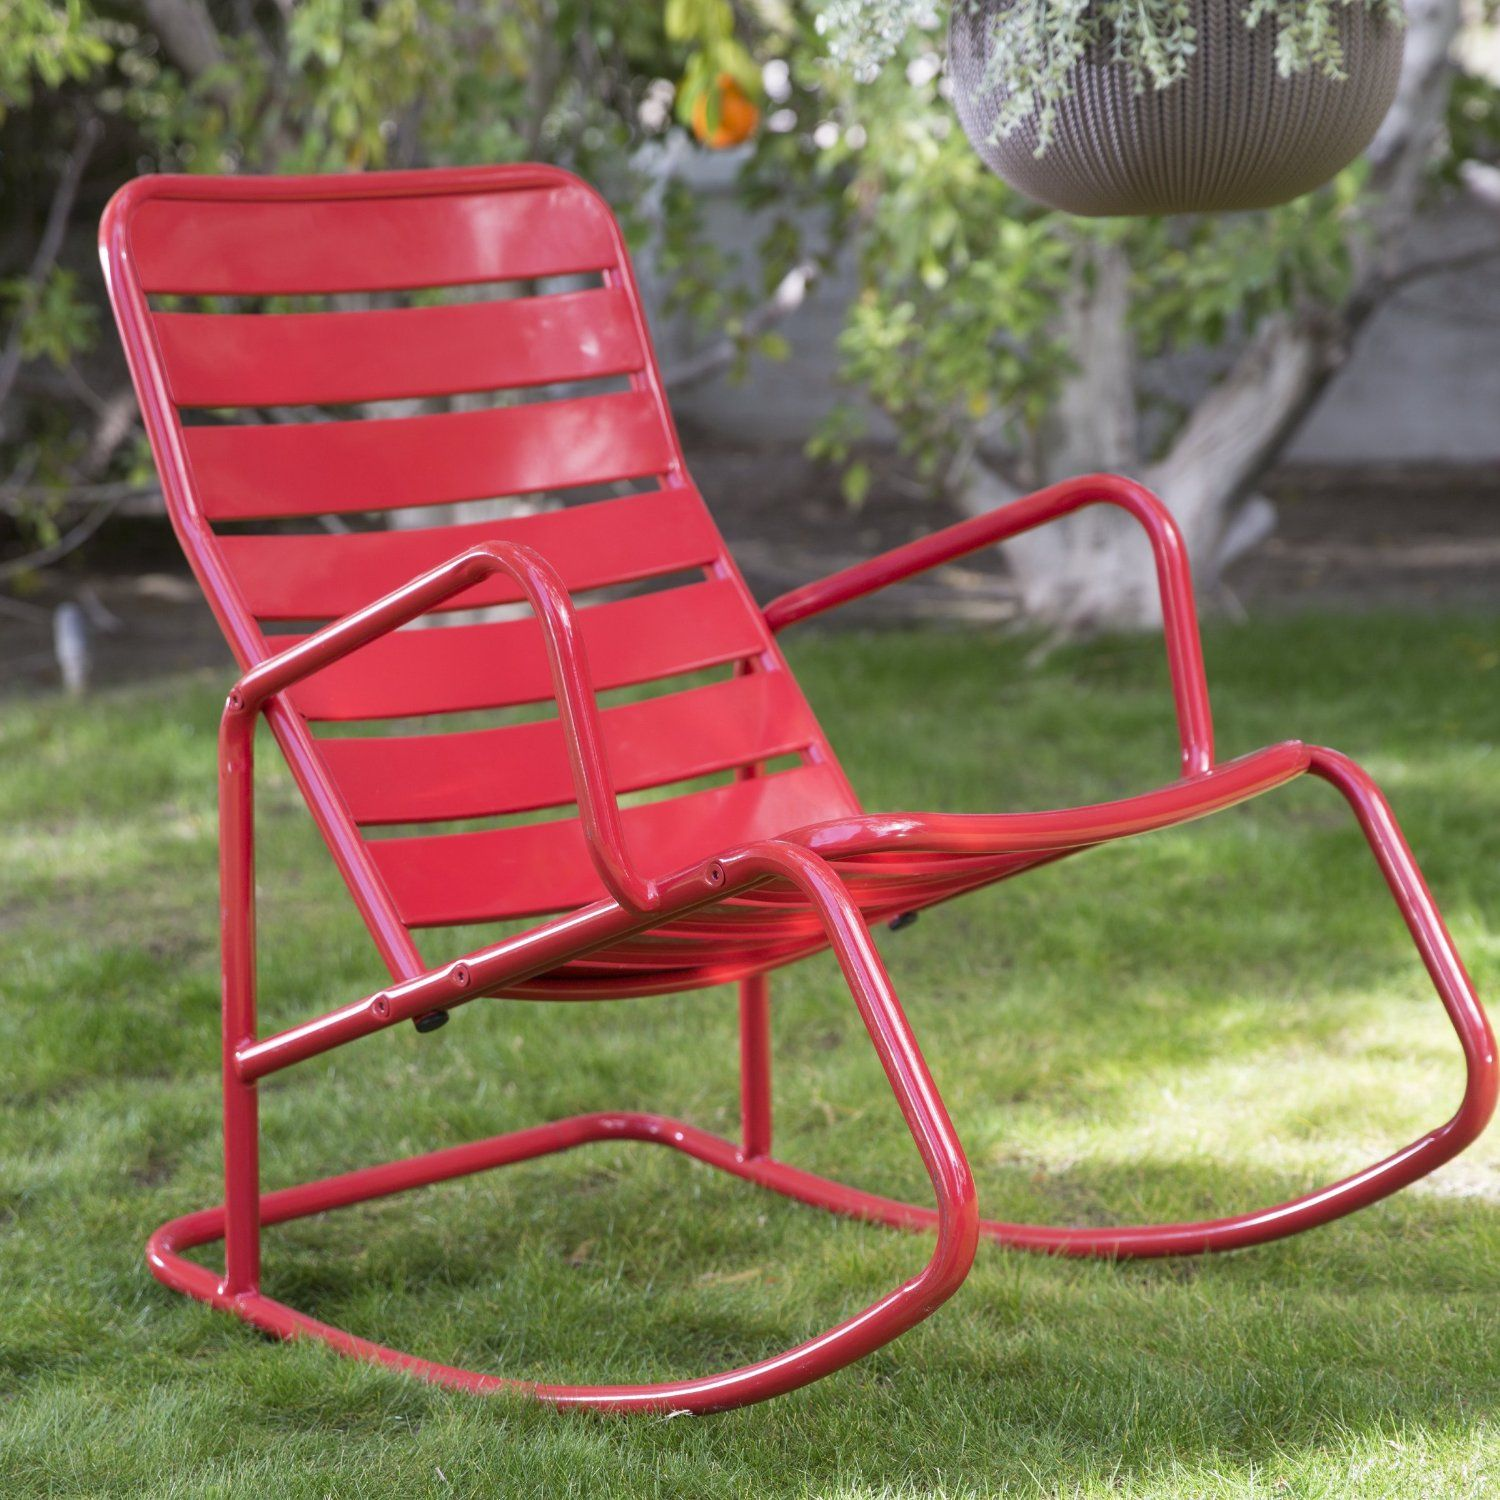 Robot Check Outdoor Rocking Chairs Rocking Chair Stylish Rocking Chairs